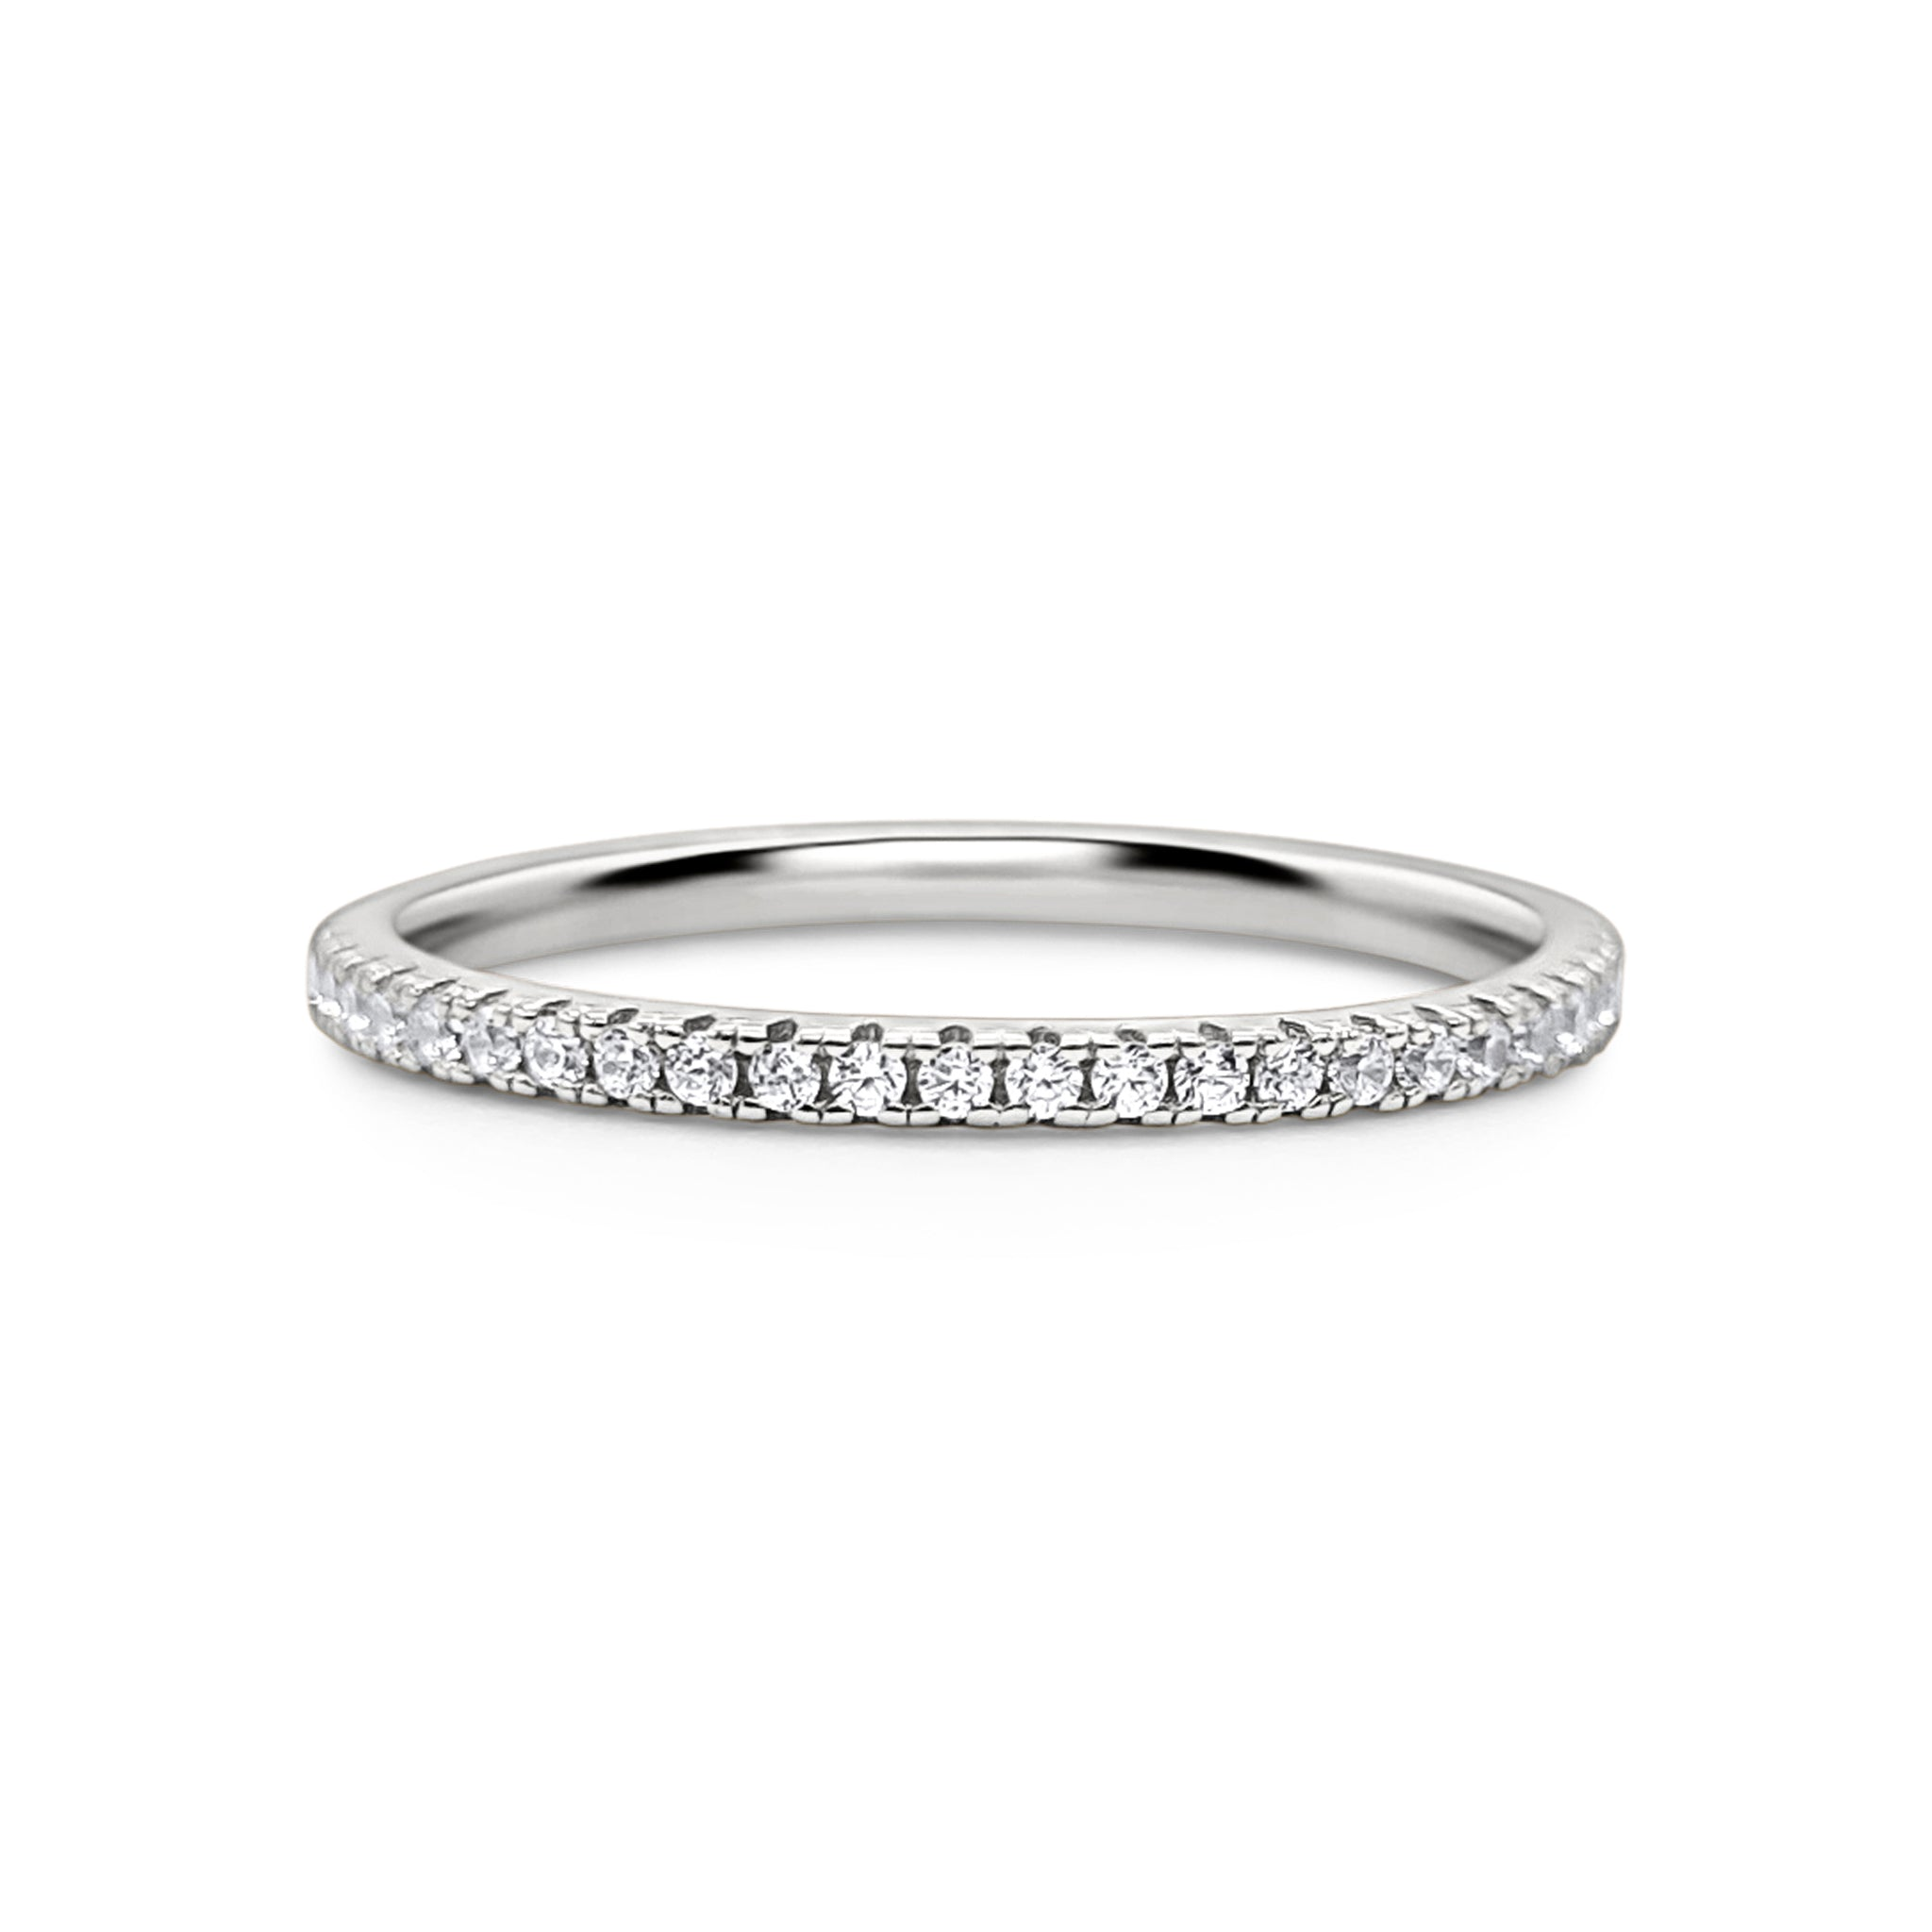 Sterling Silver Full Band Eternity Ring (Thin Band) - Stackable, Minimalist, Dainty Ring, Birthday, Anniversary, Gift For Her, Wedding Band